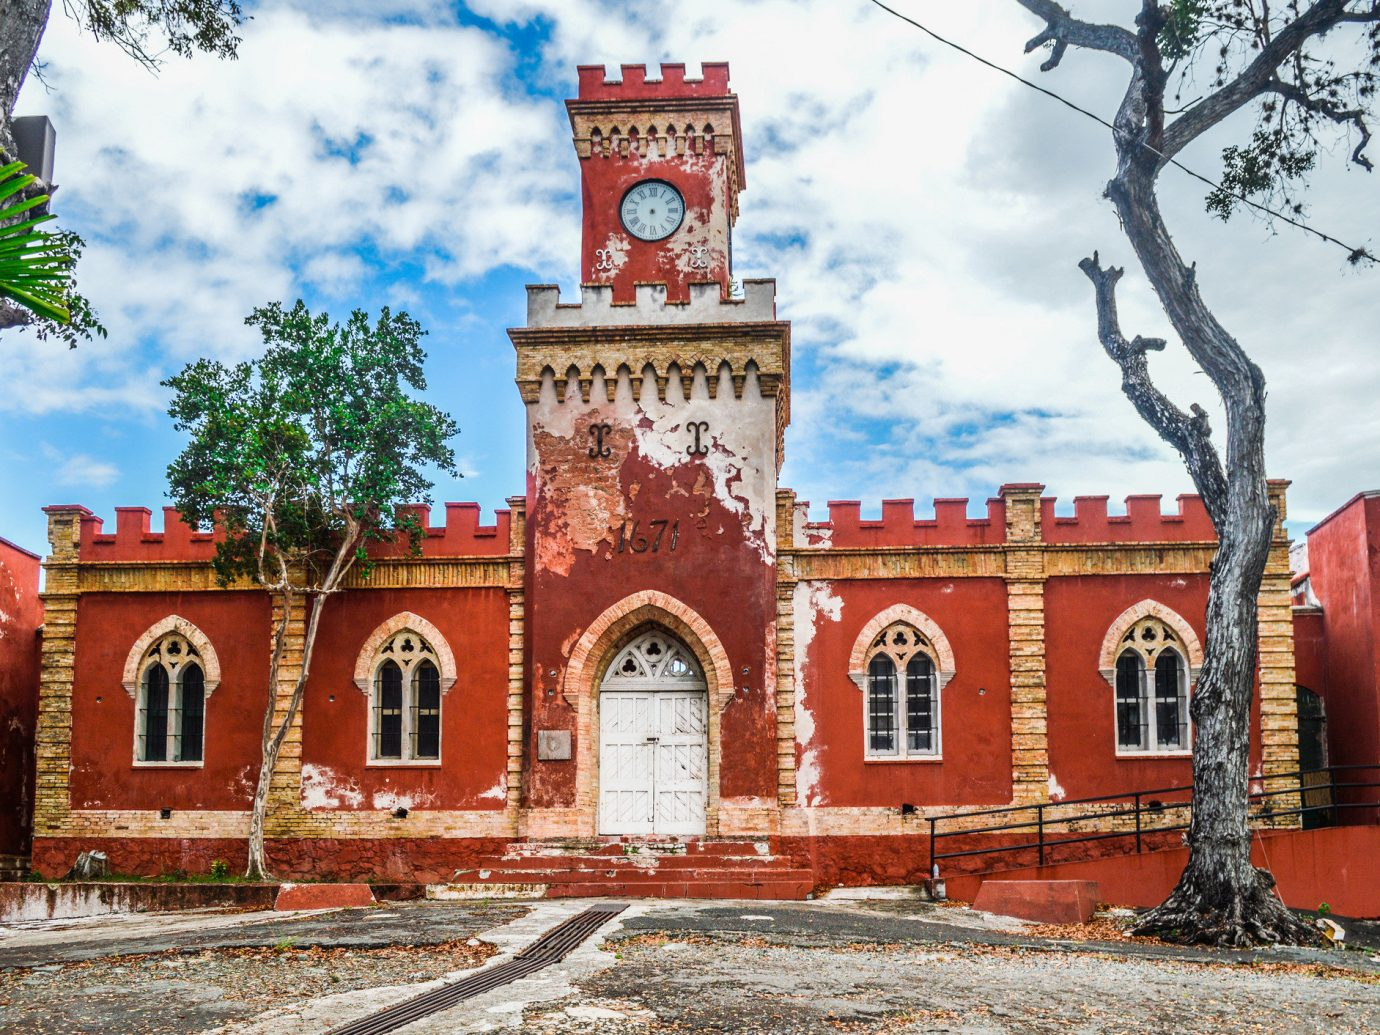 Trip Ideas outdoor tree sky building landmark Town brick Architecture old tourism red place of worship ancient history facade Church arch tower synagogue travel stone surrounded